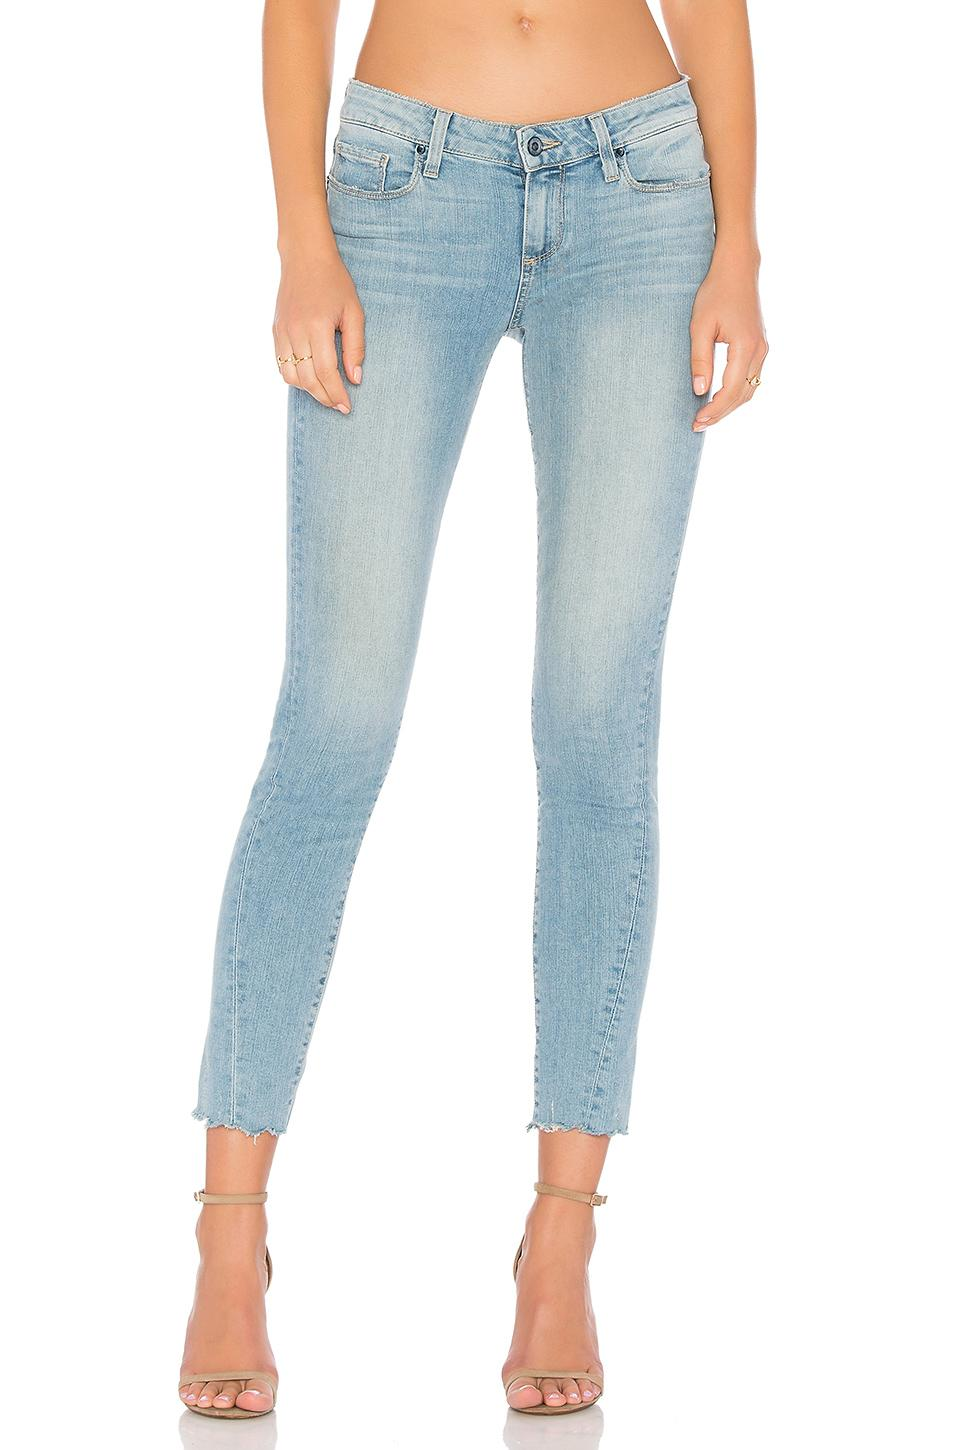 Paige Skyline Ankle Peg Twisted Seam In Fina Distressed